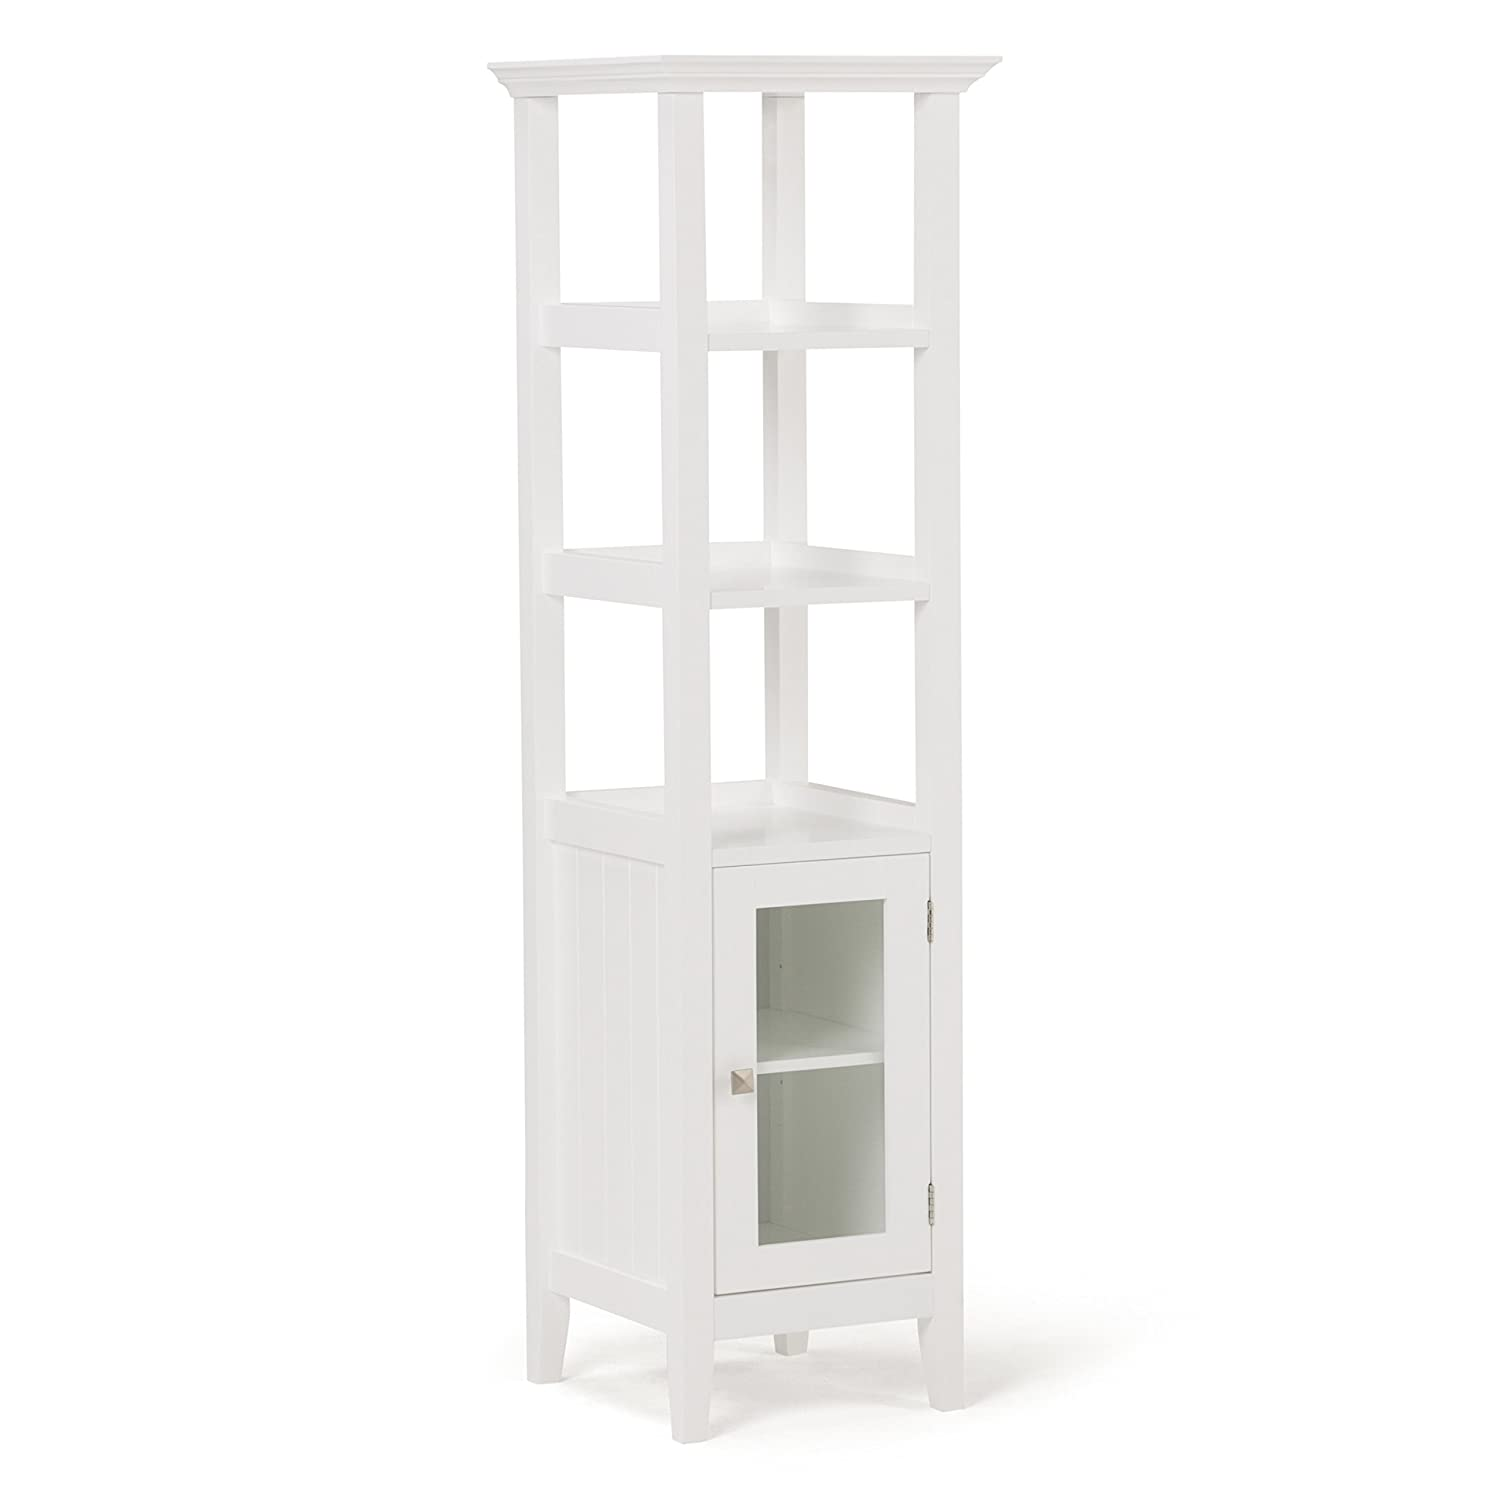 Simpli Home Acadian Bath Storage Tower, White AXCBCACA-05